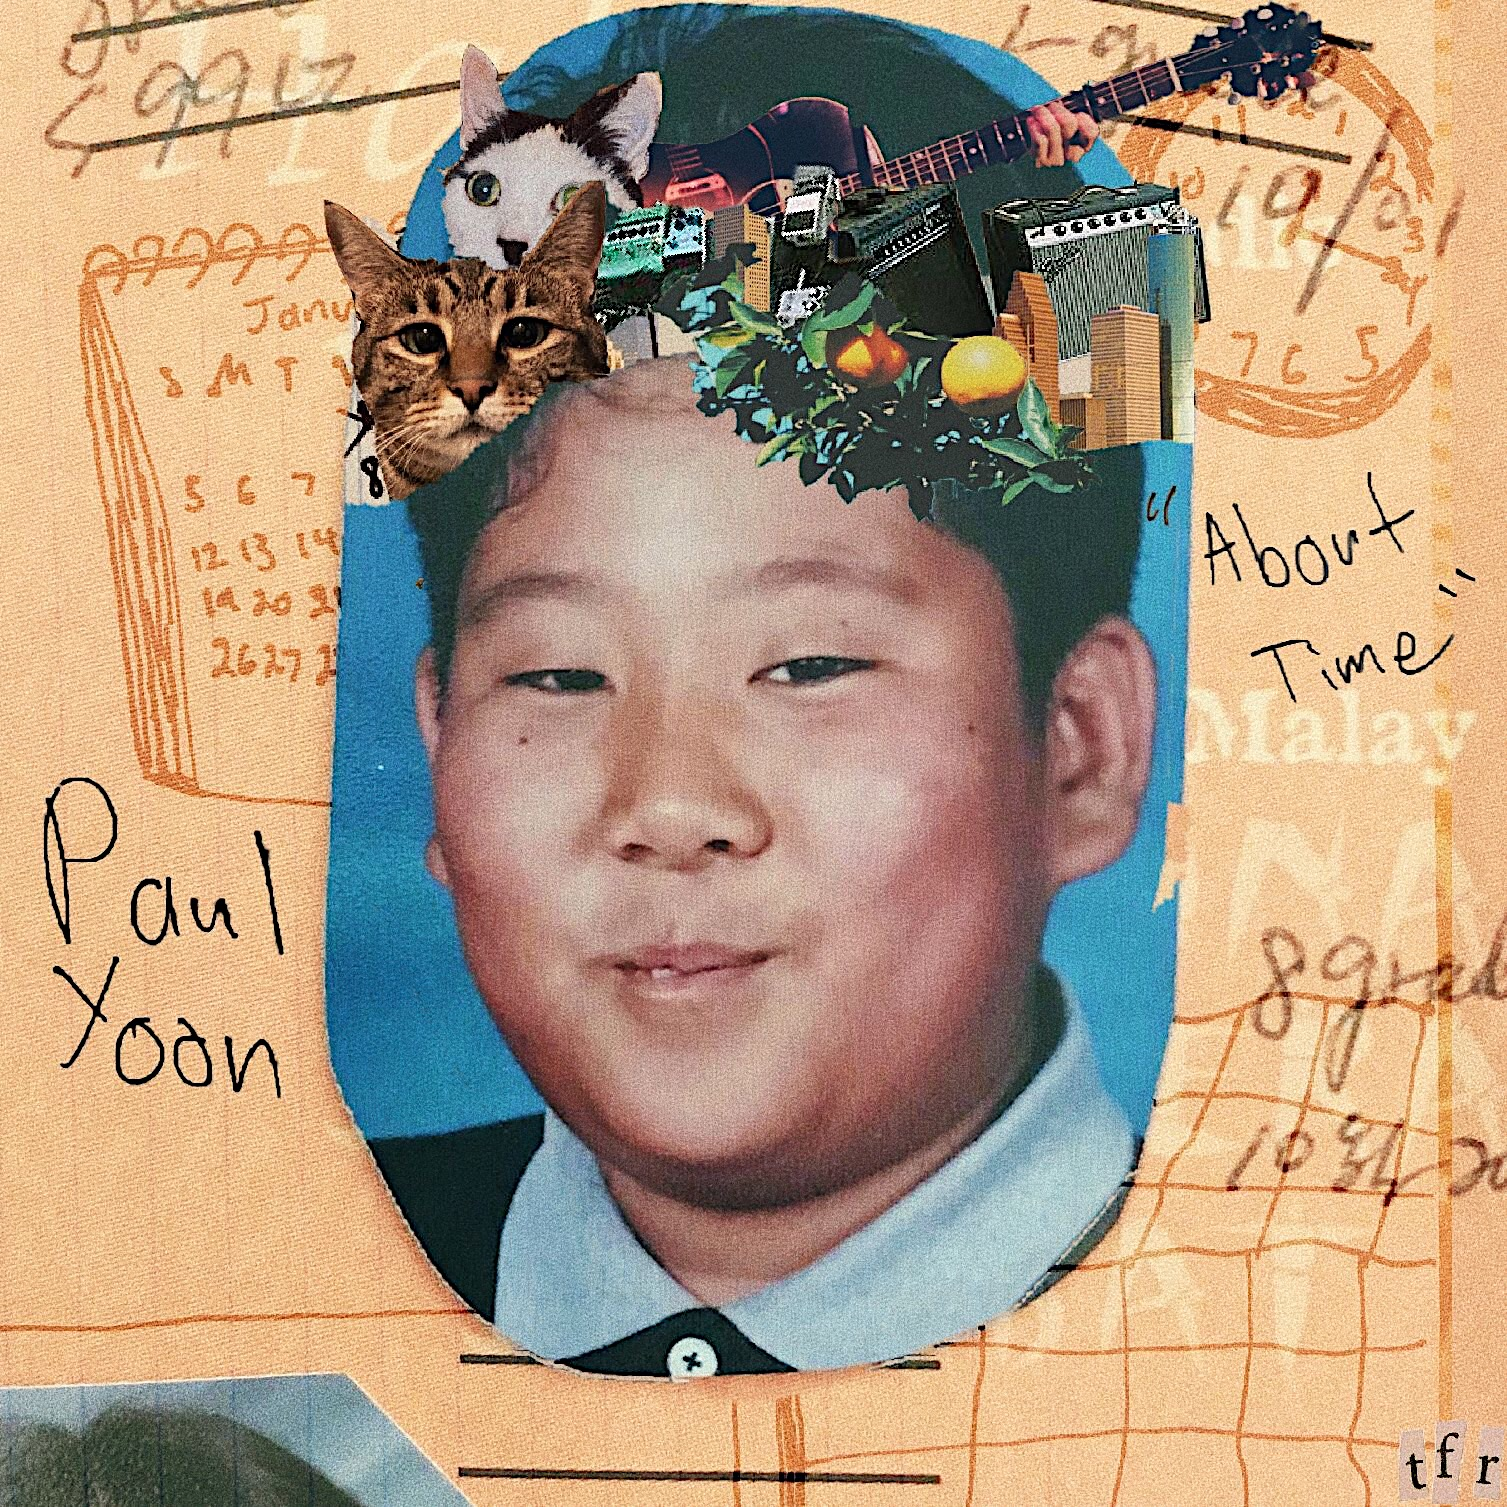 *SOLD OUT* Paul Yoon